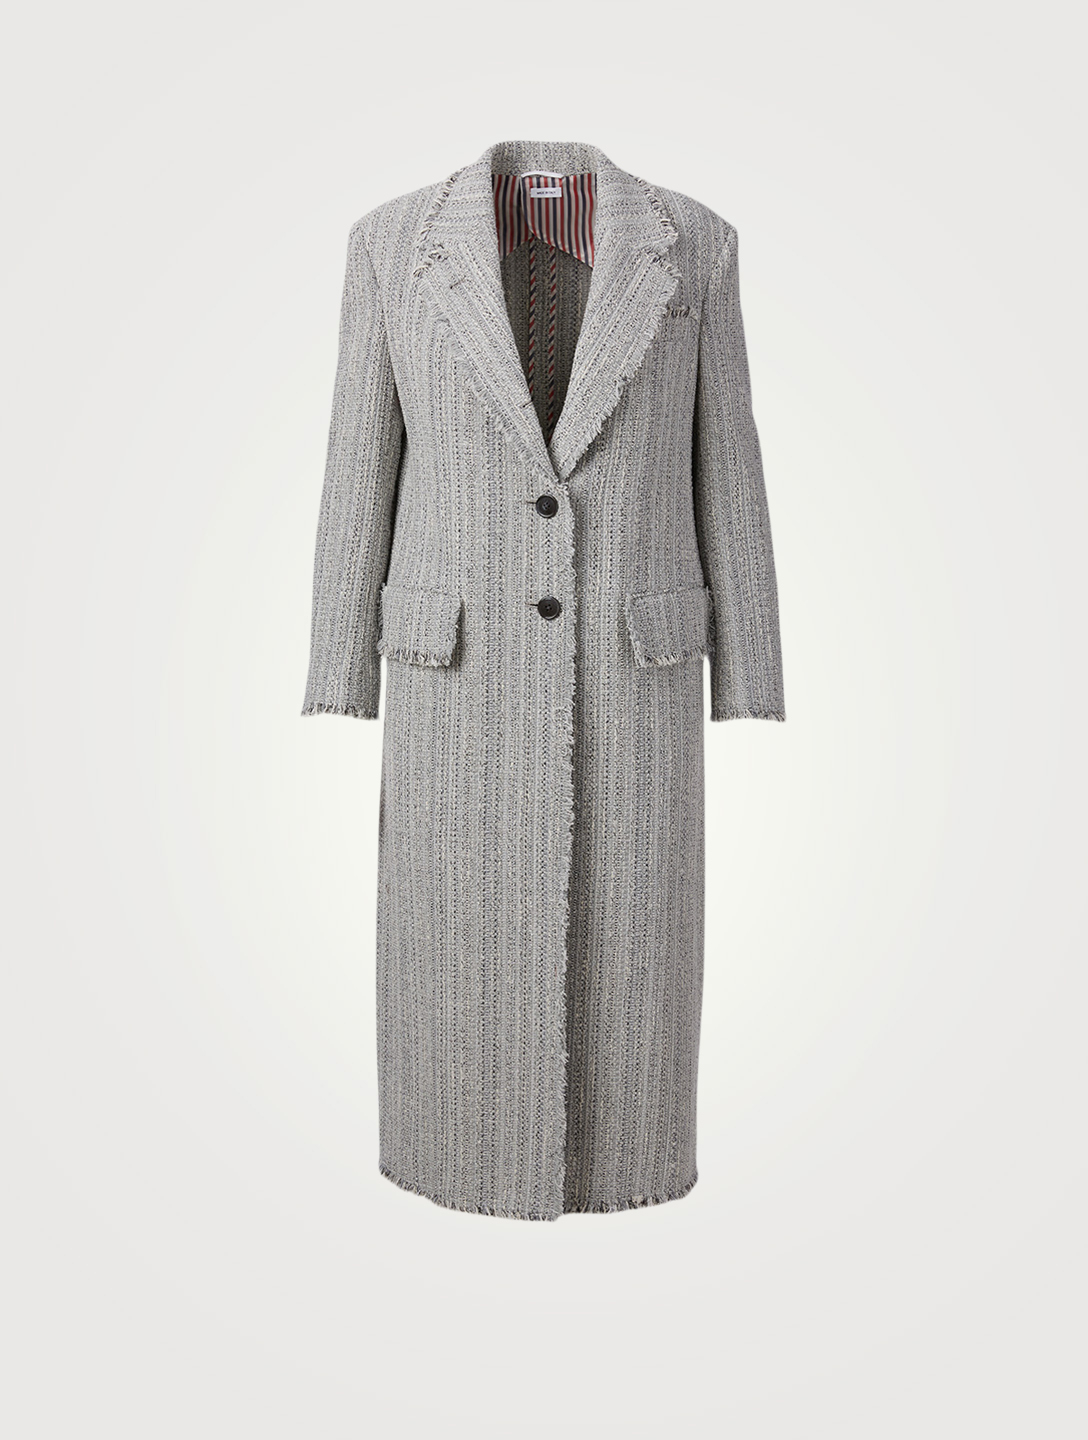 THOM BROWNE Cotton Tweed Frayed Long Coat Women's Grey